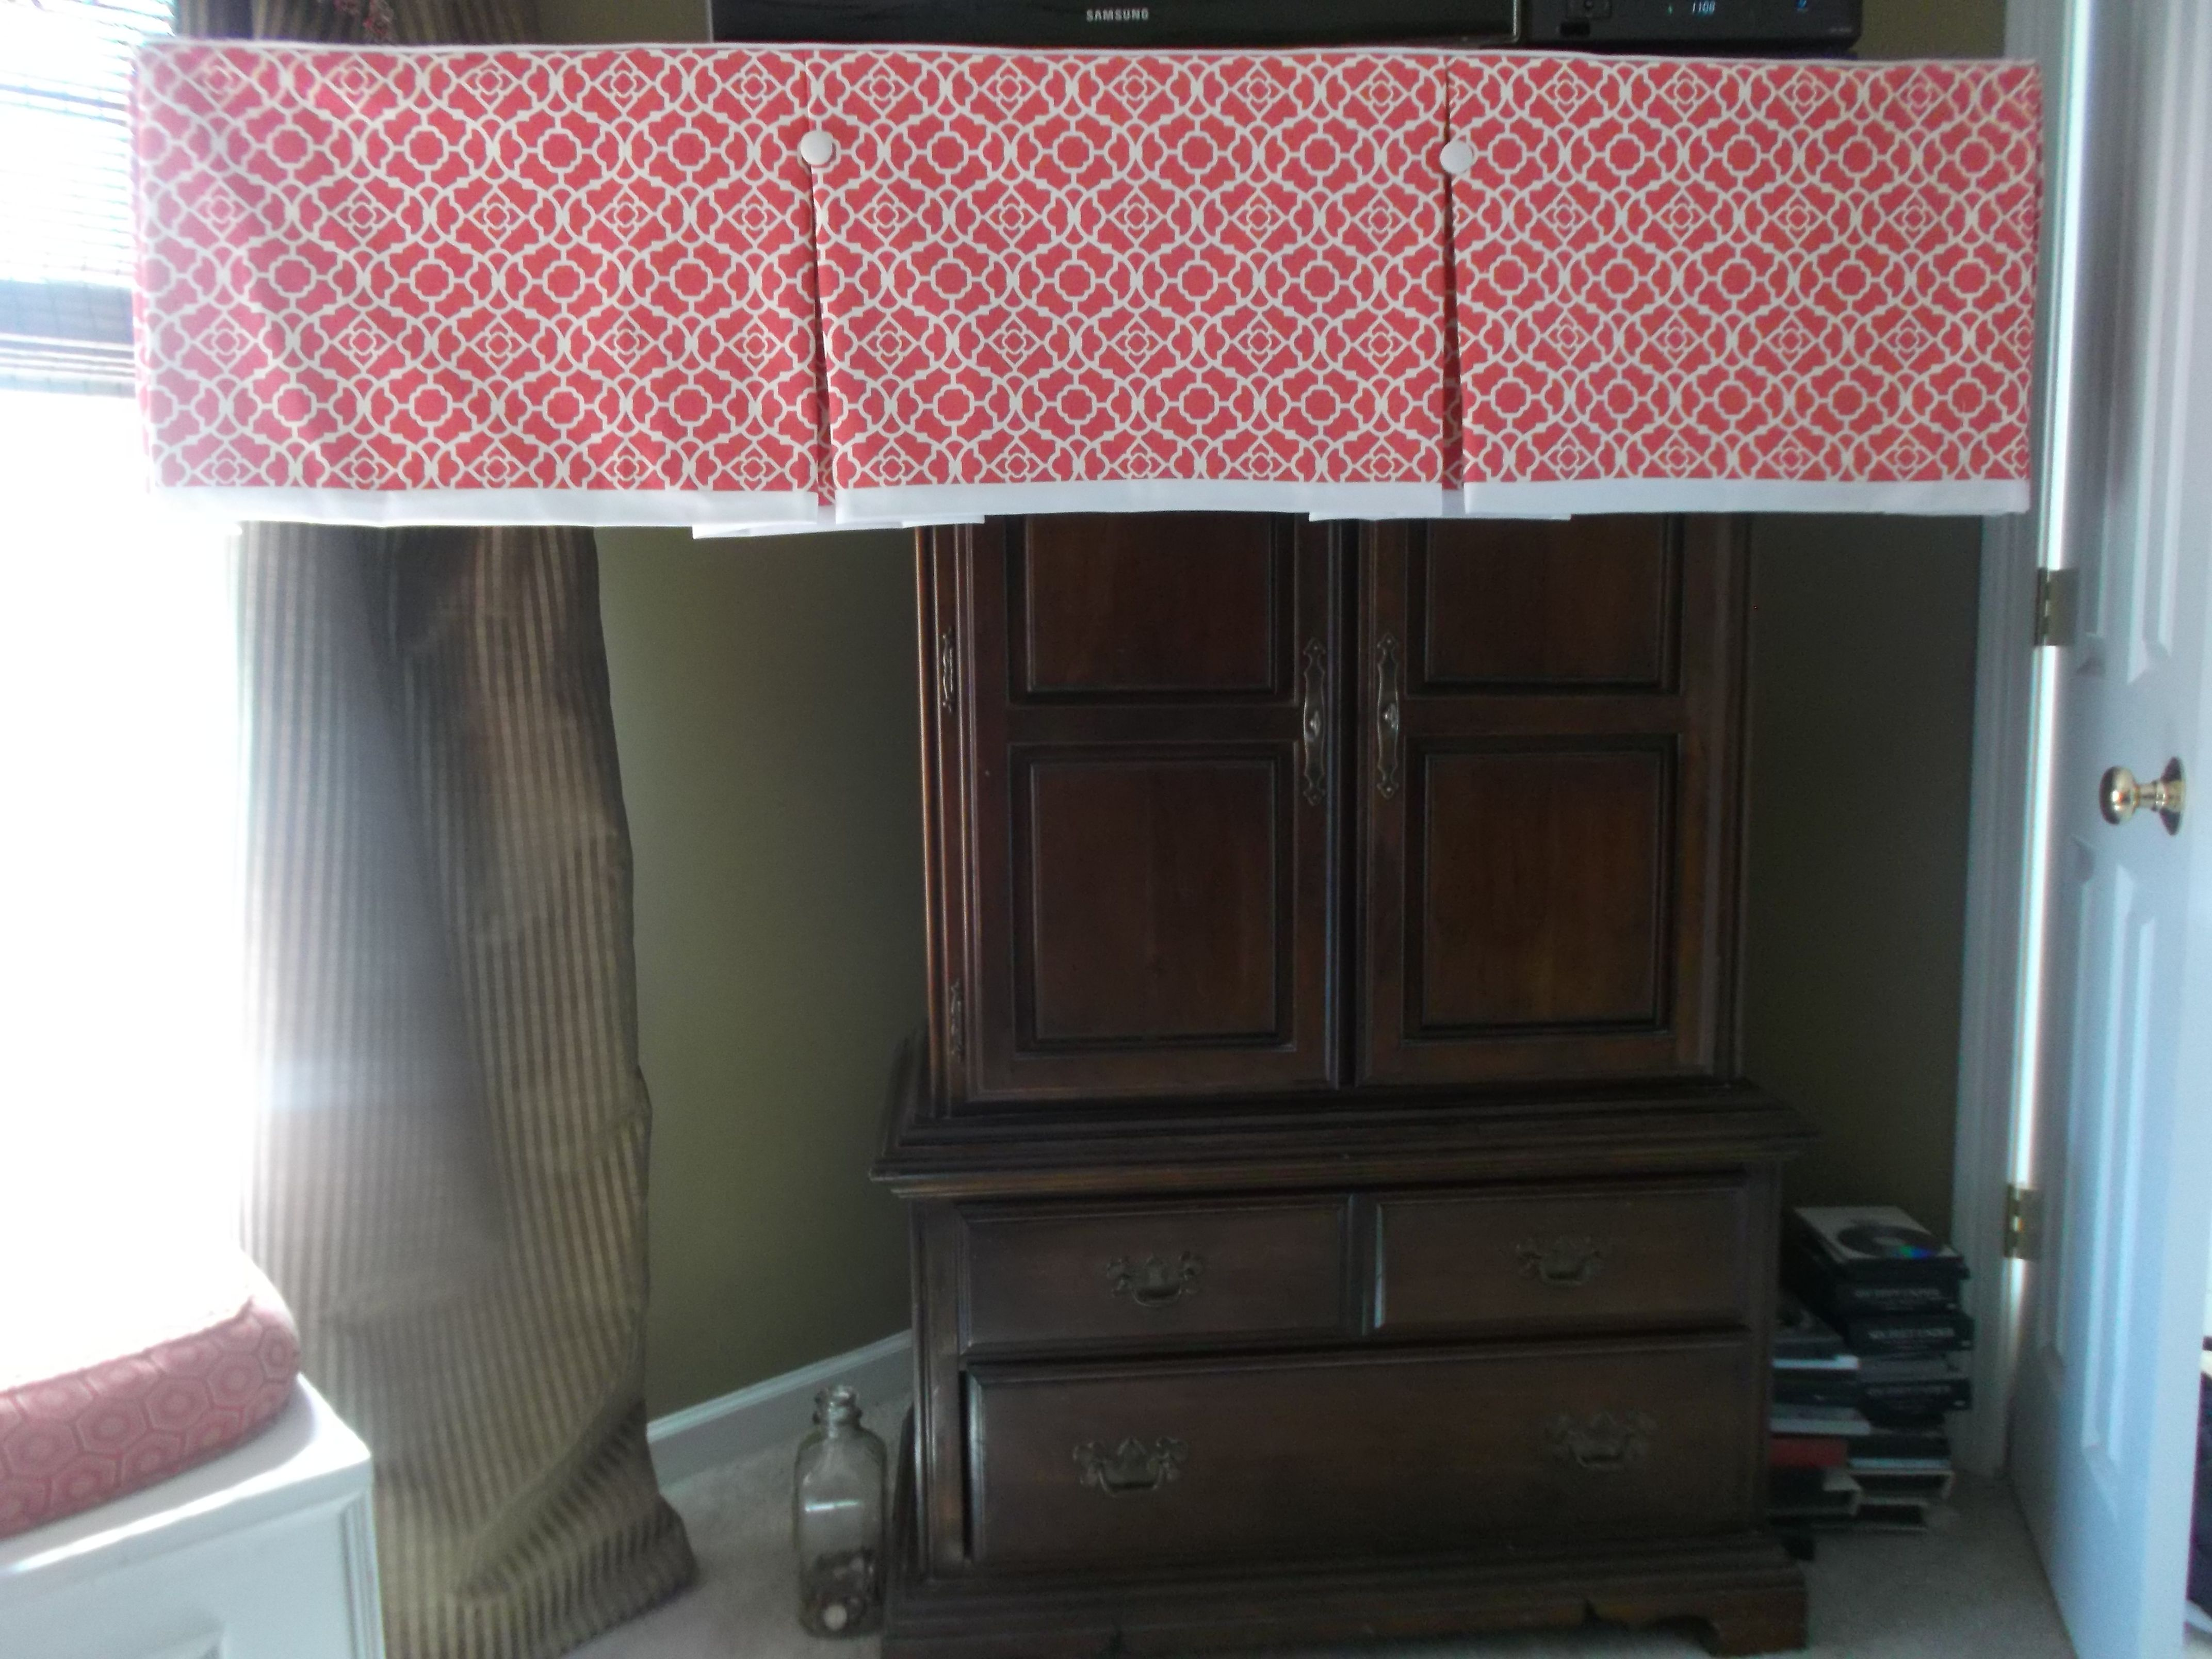 Box Pleated Valance With Trim